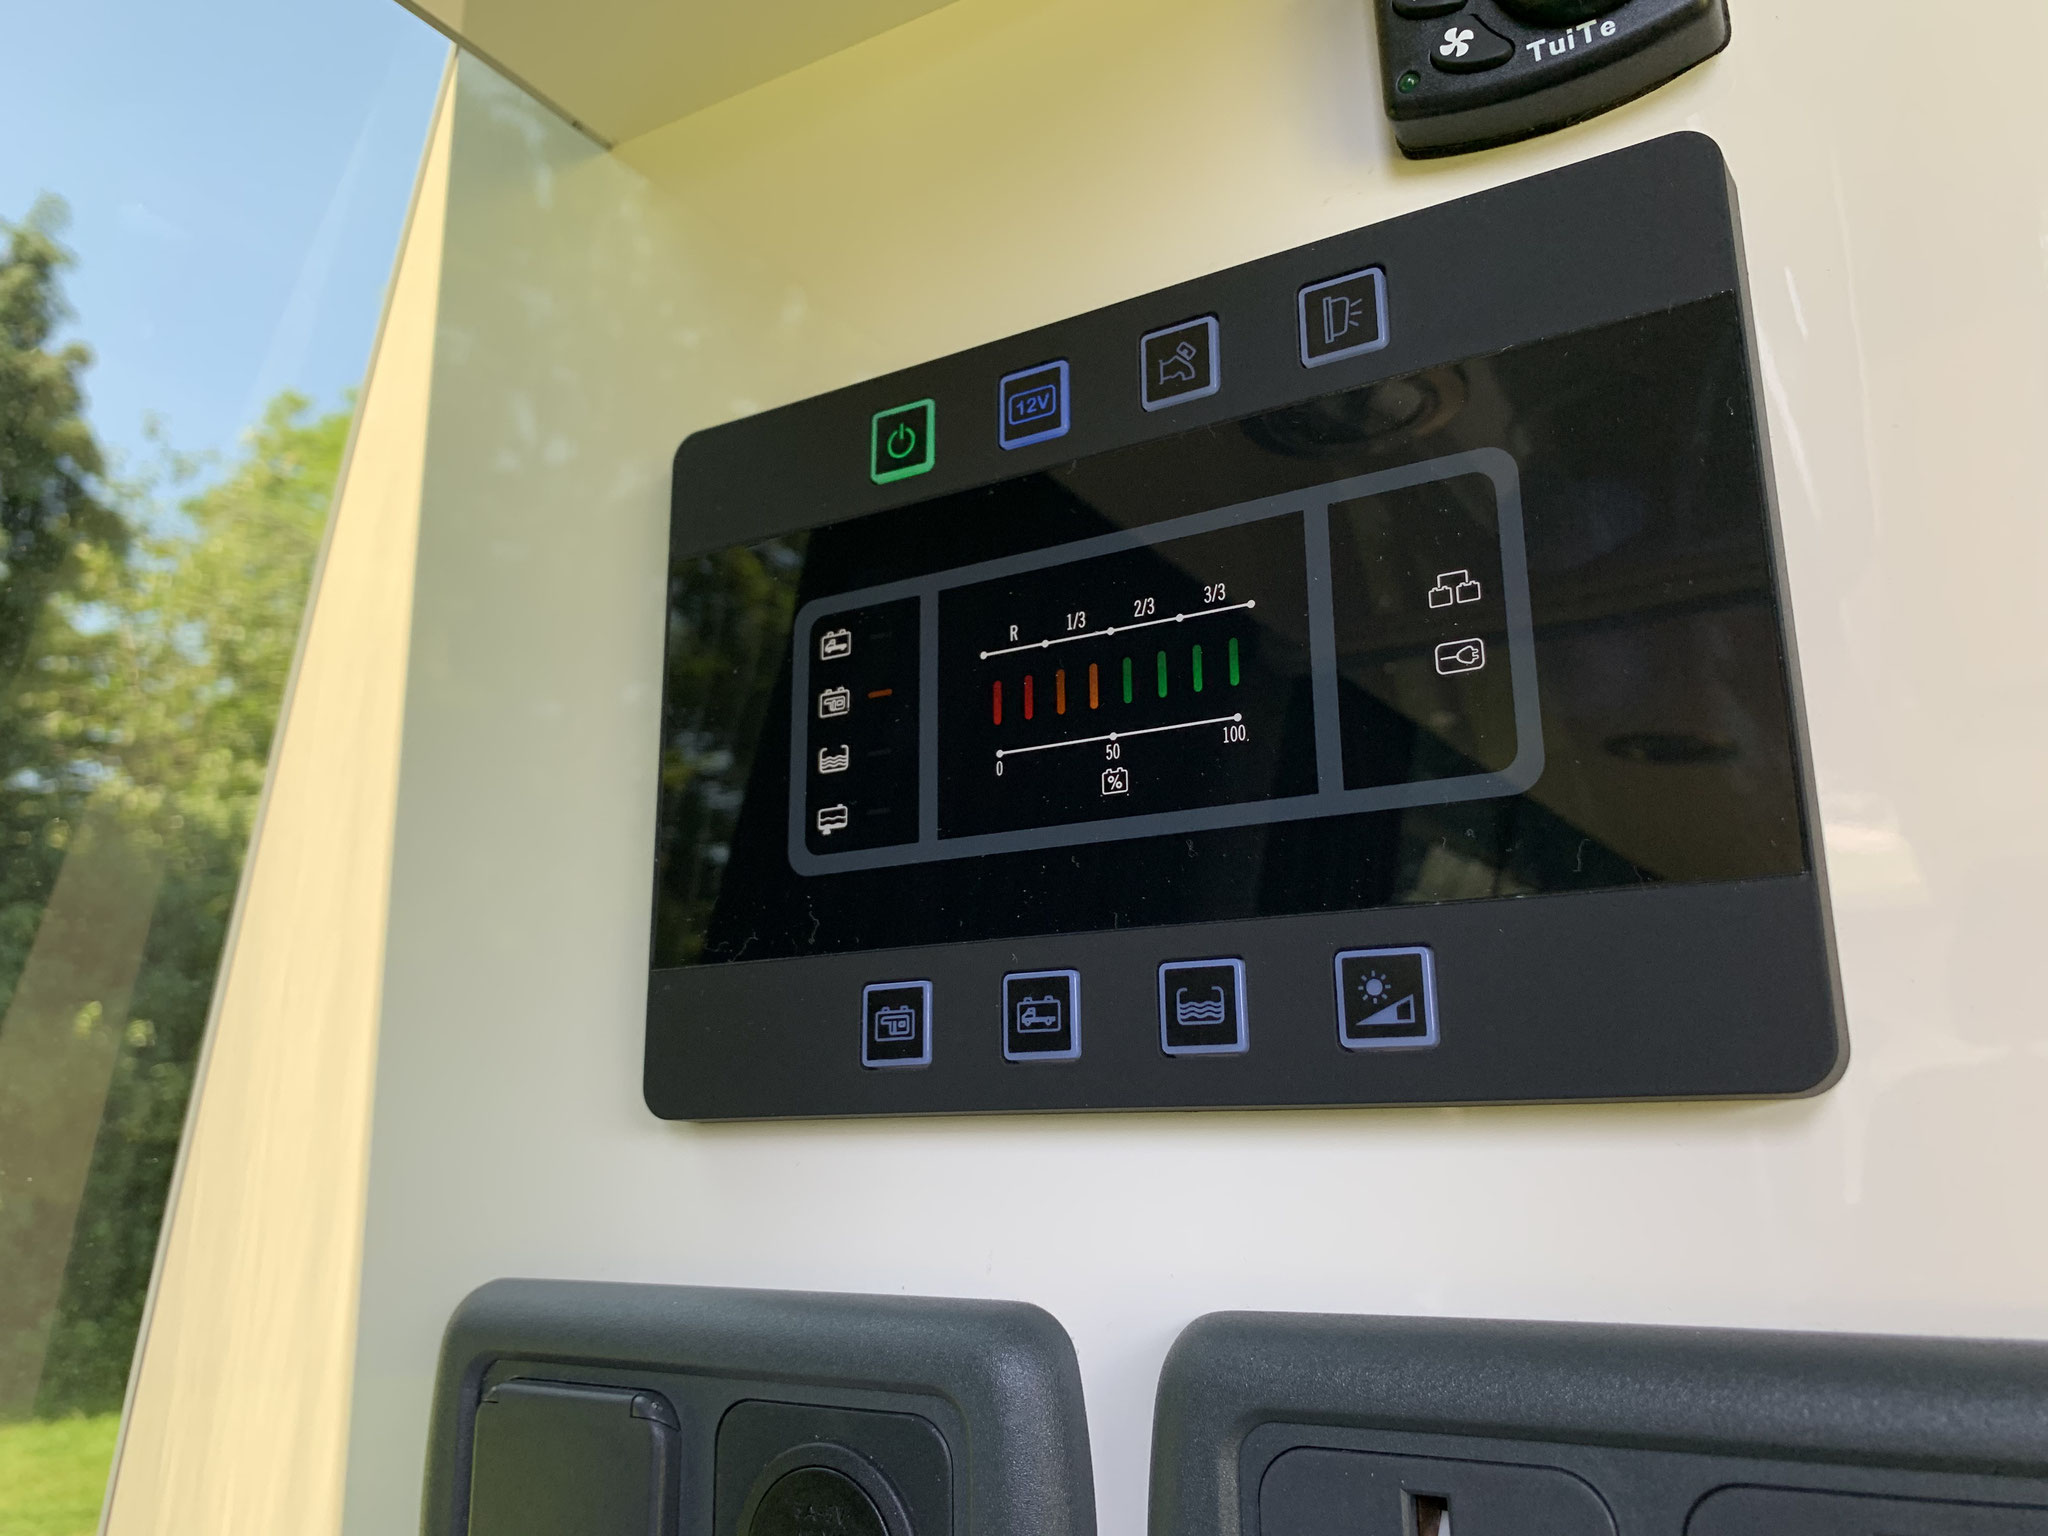 Night heater control, CBE control panel and multiple power outlets